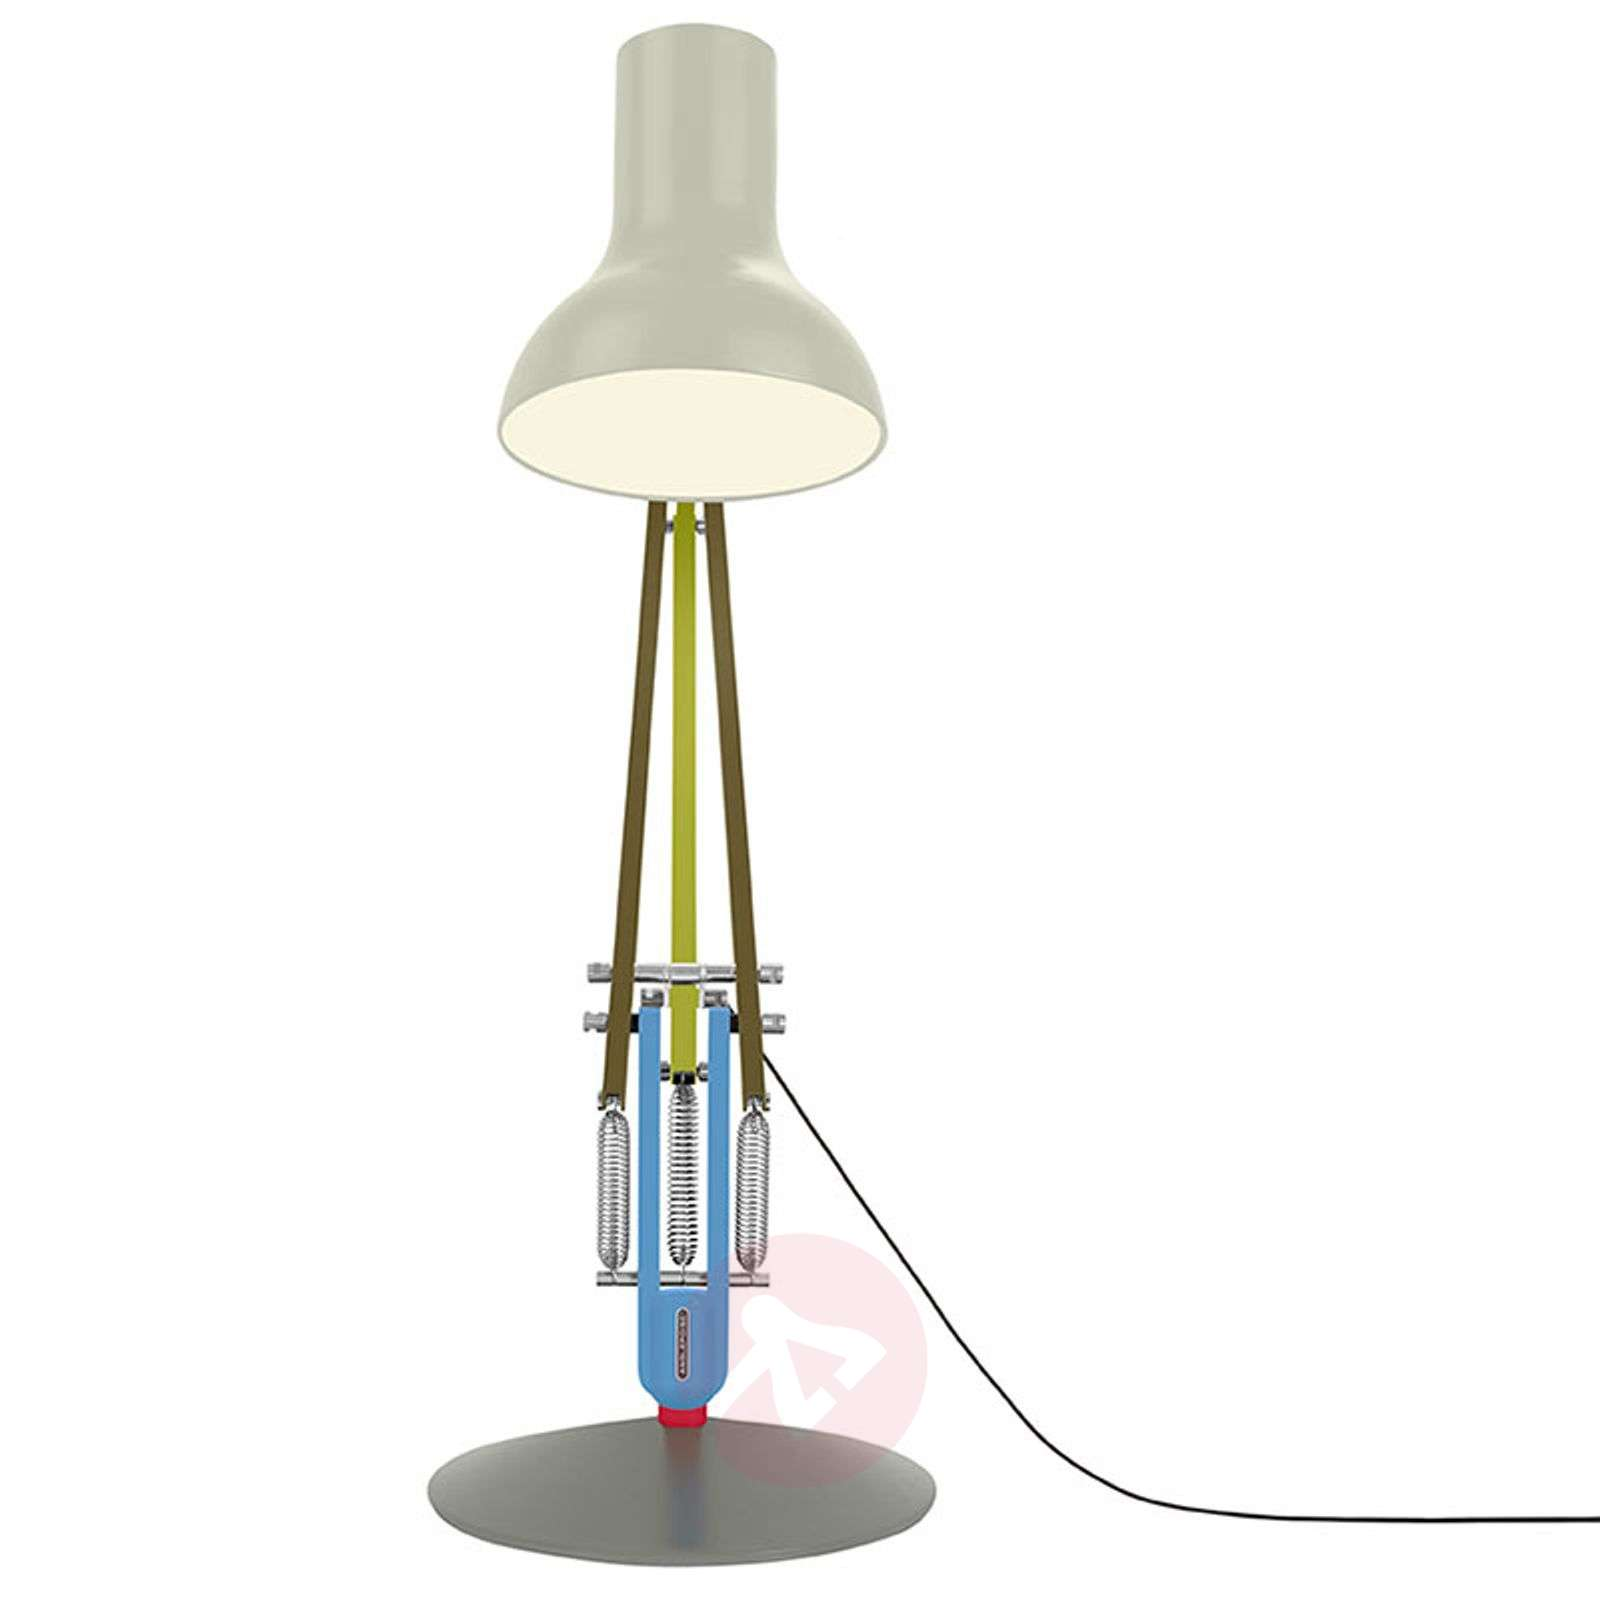 Anglepoise® Type 75 Giant floor lamp Paul Smith 1-1073066-01